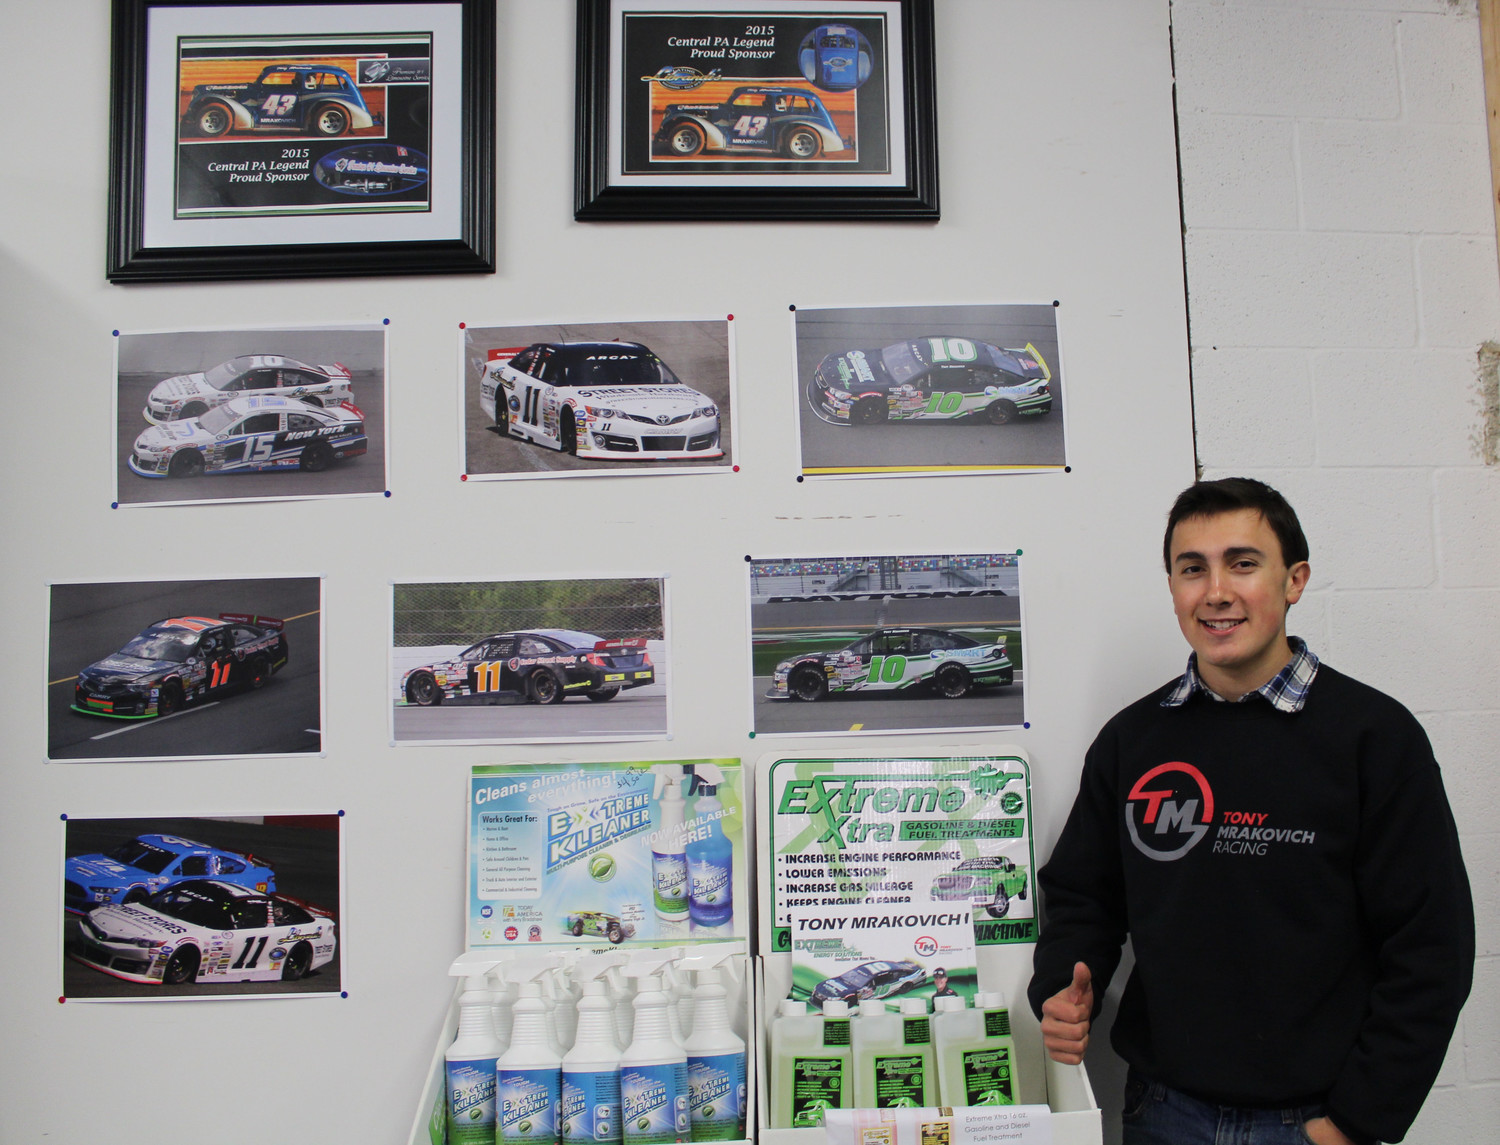 Tony Mrakovich stands in front of a pictures of his racing cars.